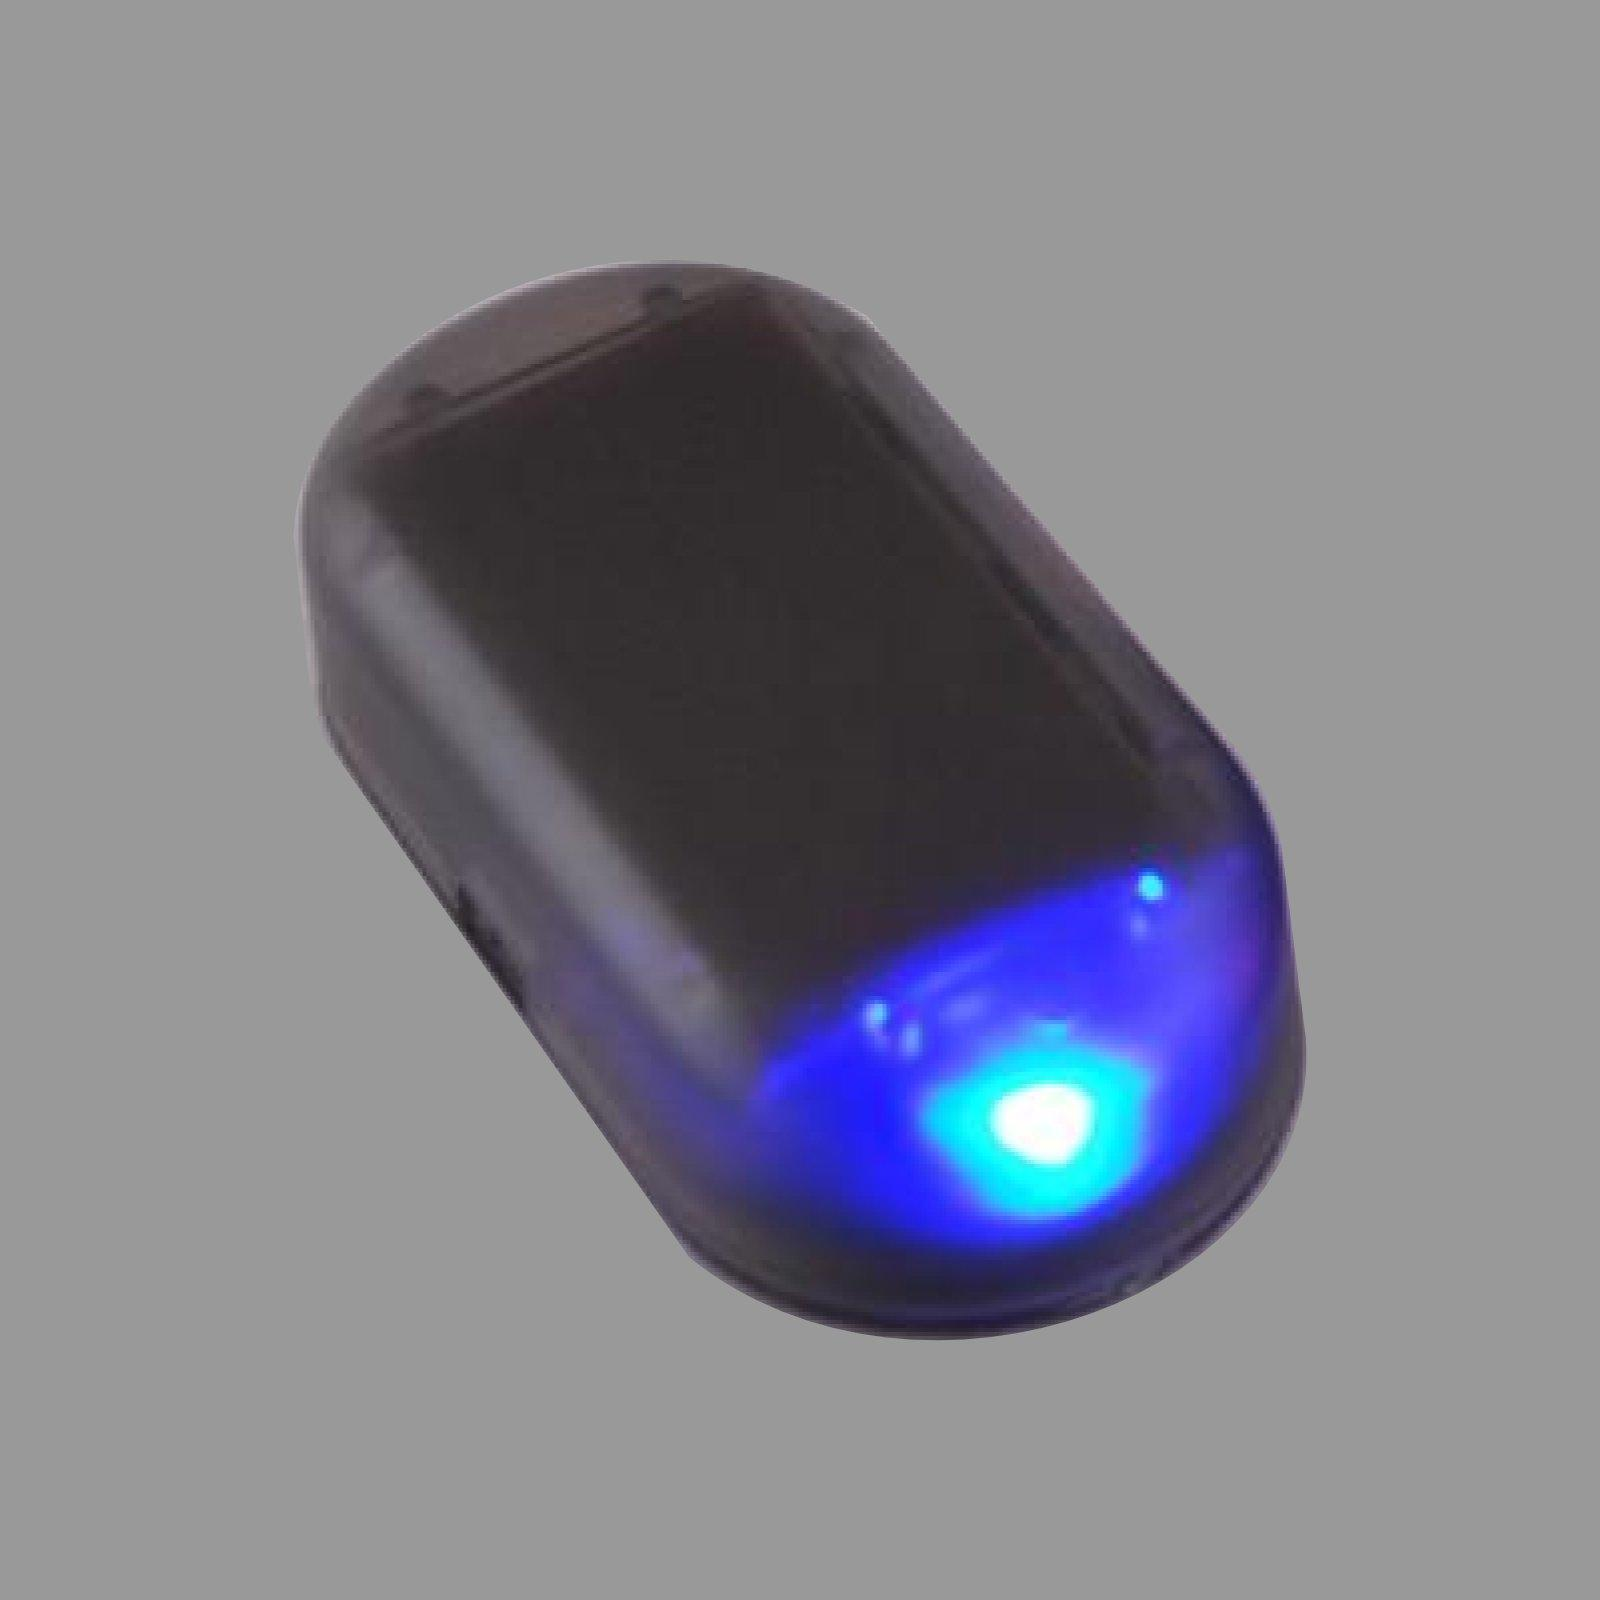 2018 fake solar car alarm led light security system warning theft 2018 fake solar car alarm led light security system warning theft flash blinking blue from lownex 322 dhgate aloadofball Image collections